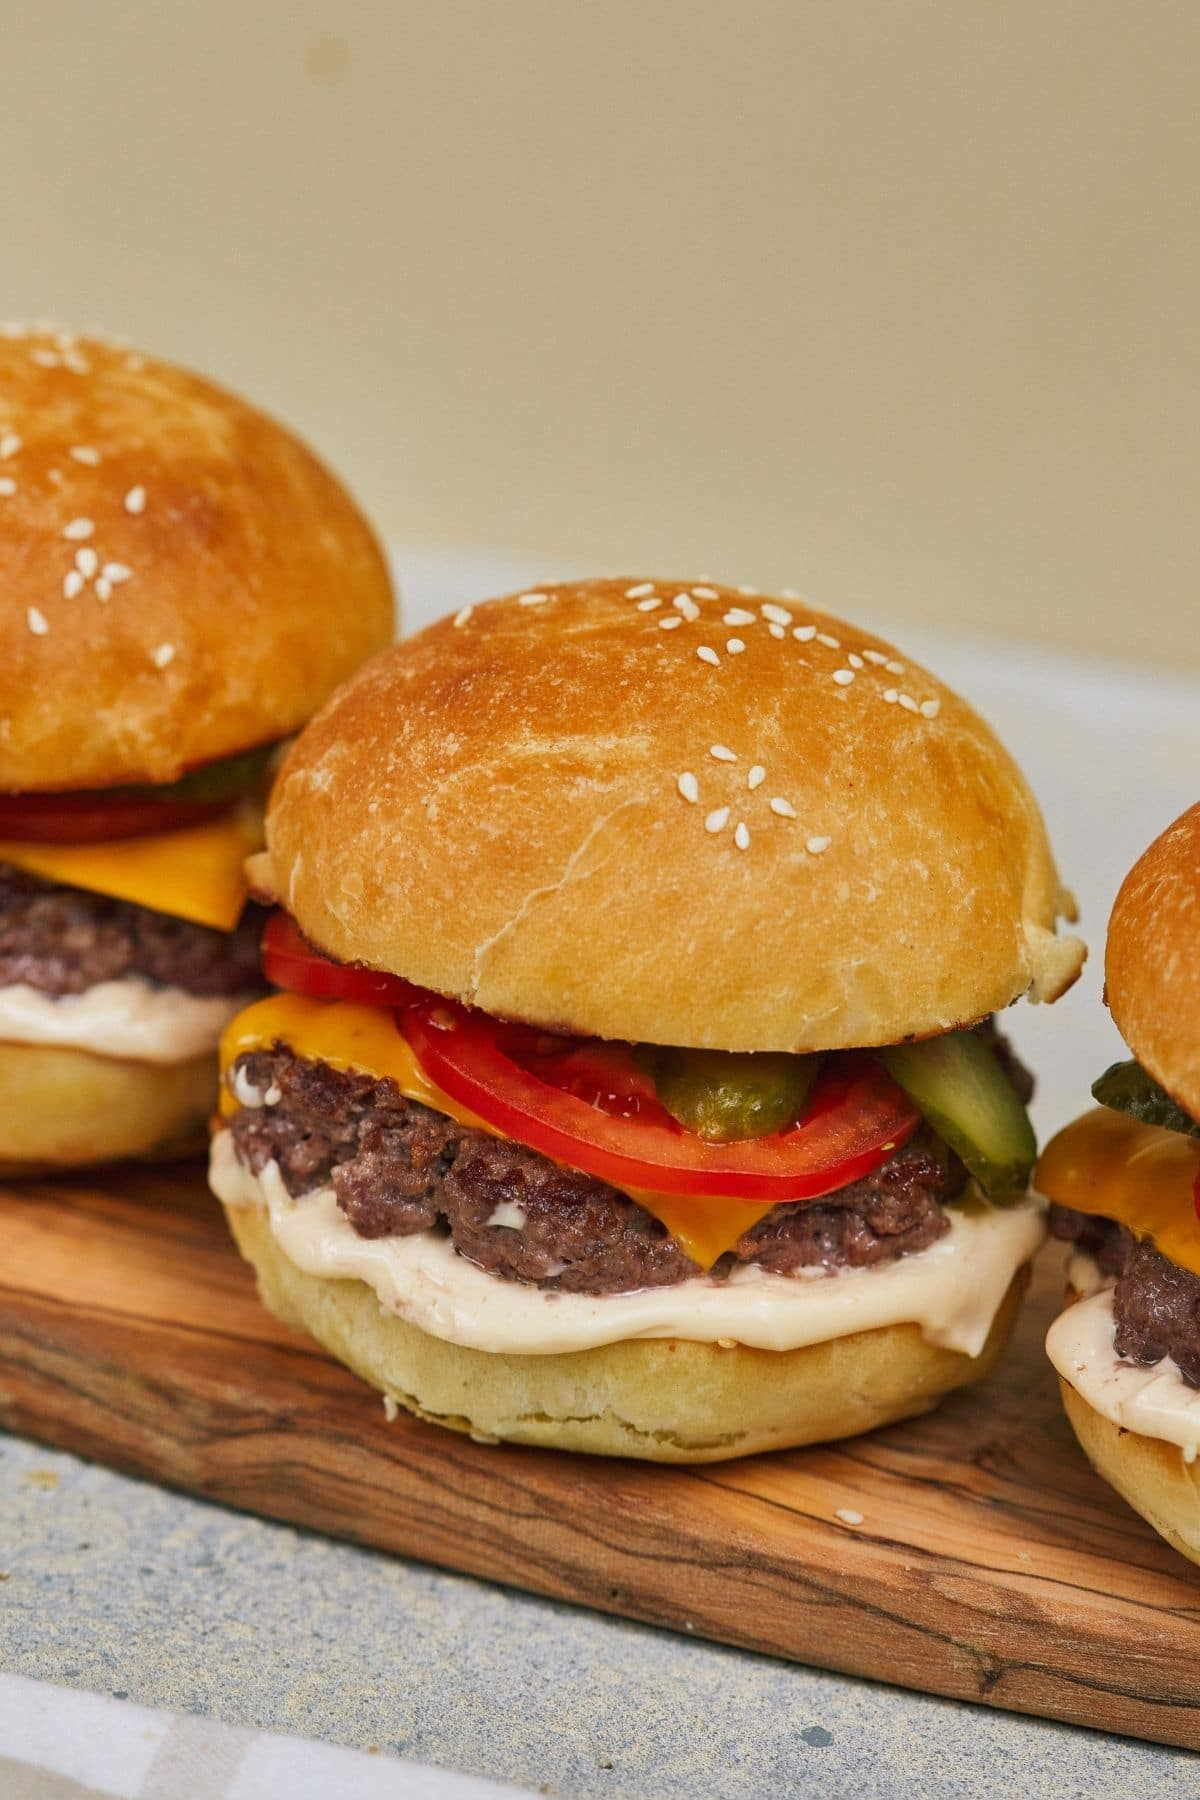 cheeseburger with sesame seed bun tomato and pickle on cutting board